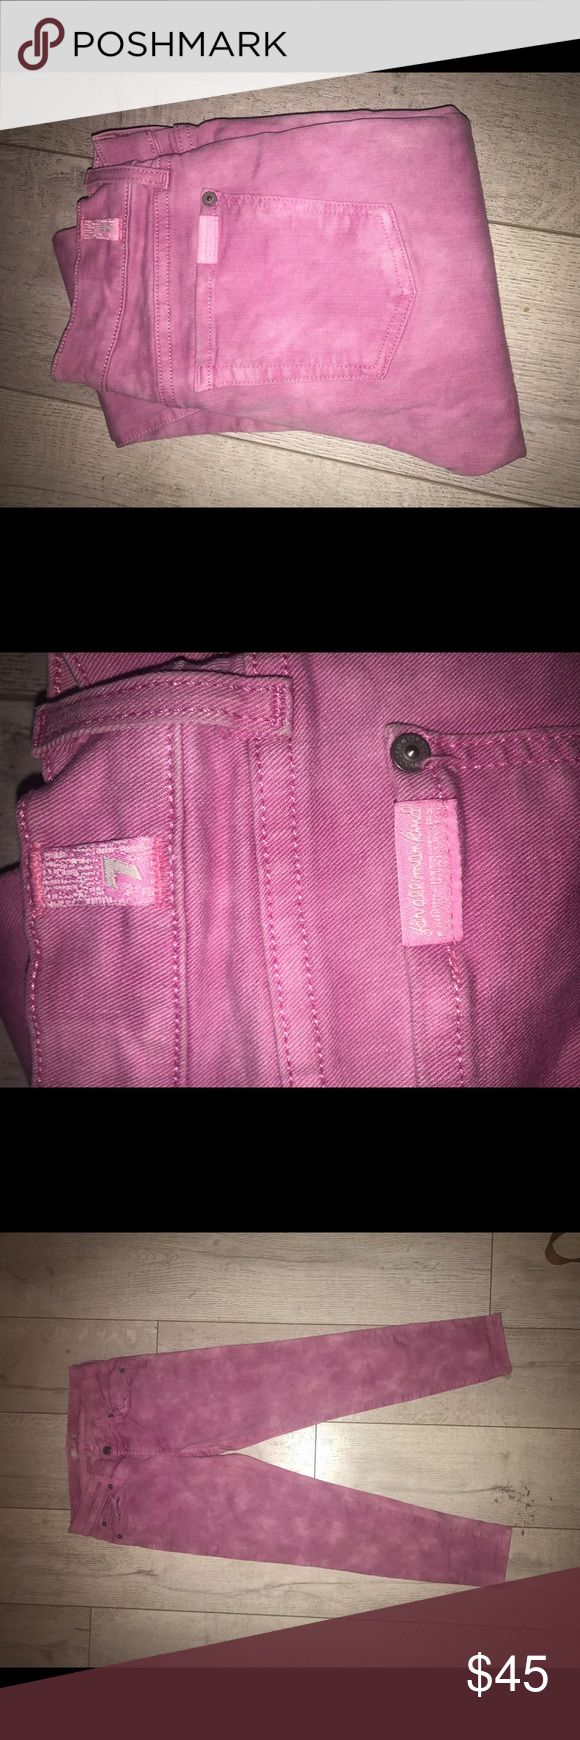 Seven mankind pink tie dye jeans size 27 NEW notag 7 for all mankind Pink tie dye skinny jeans Ankle length Very cool and rare Beautiful pink color  Plastic tag is on waist still as these were never worn they sat in my closet. 7 For All Mankind Jeans Skinny